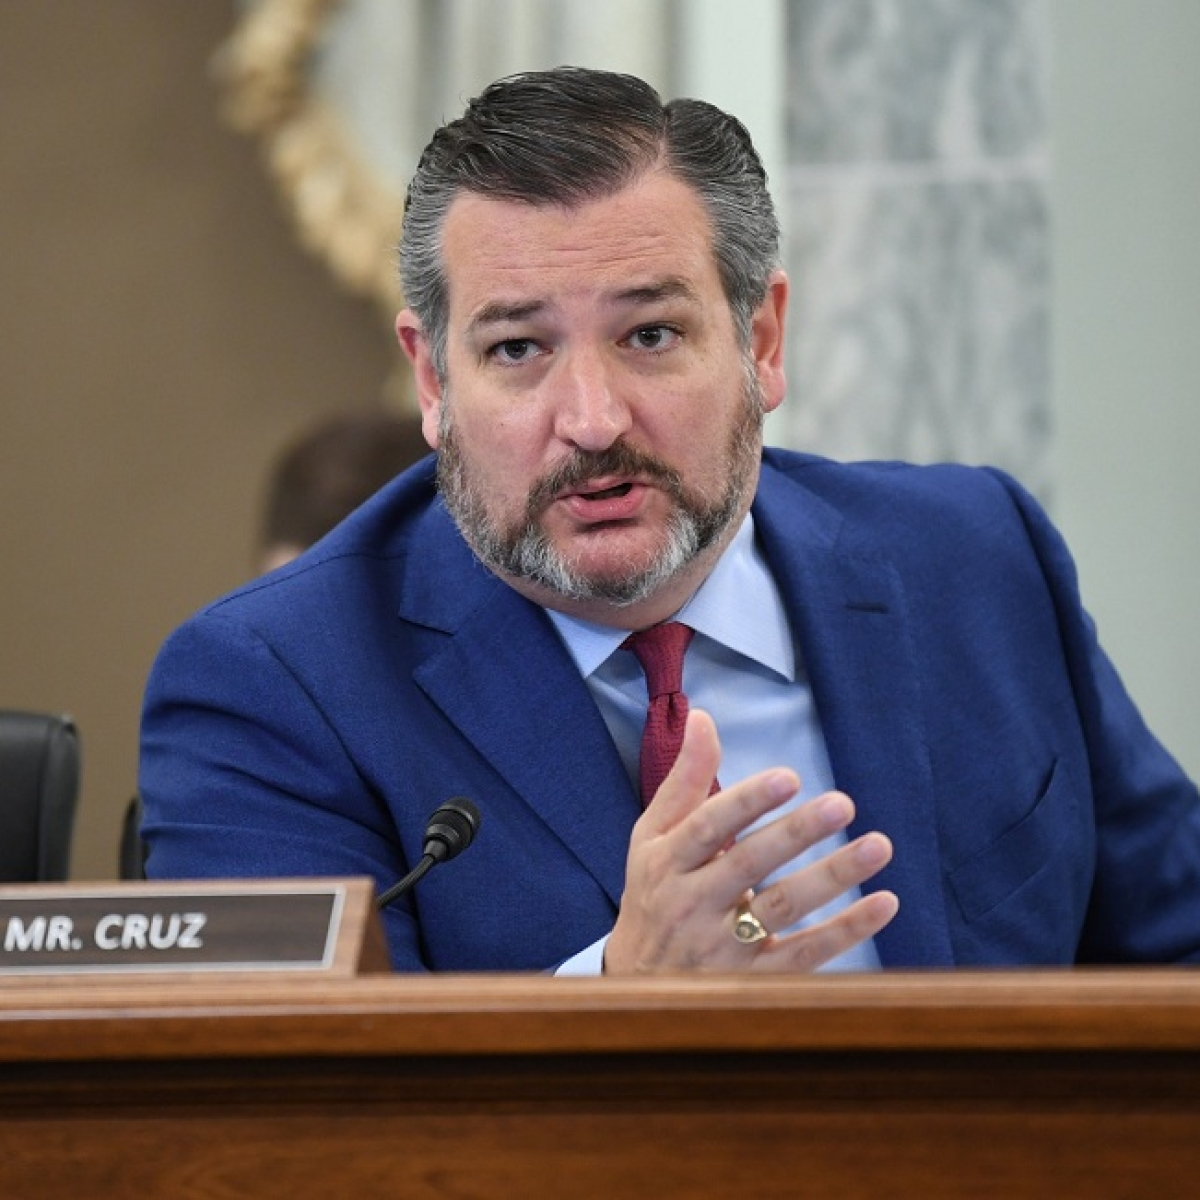 Experts share tips for being a good leader and avoid faux pas like Ted Cruz